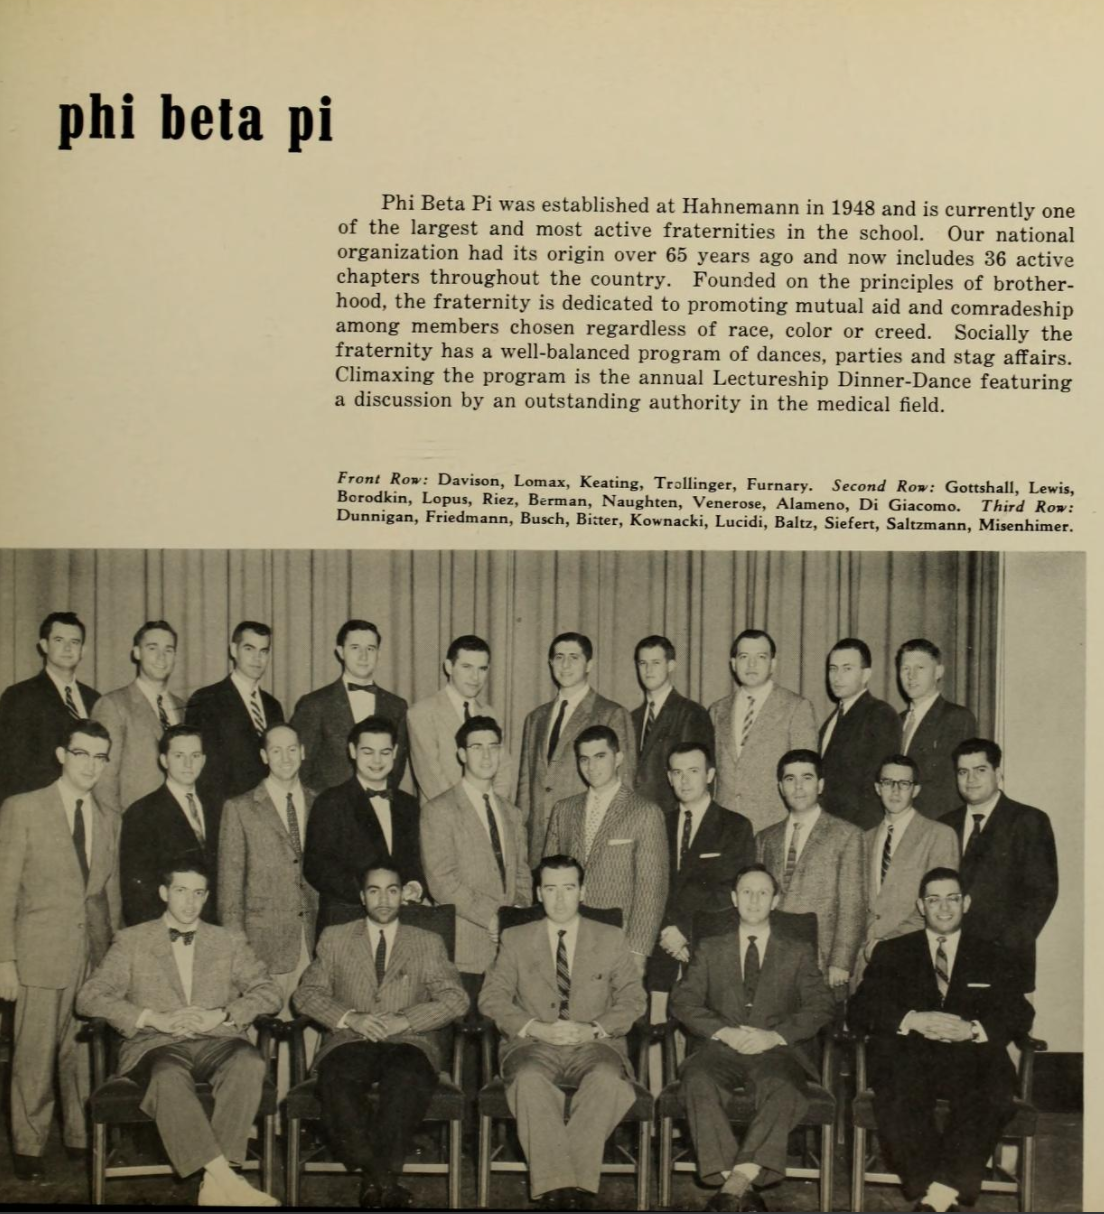 A scan from the 1957 Hahnemann yearbook for the Phi Beta Pi fraternity that Walter P. Lomax Jr, second from left in the front row in photo, joined.